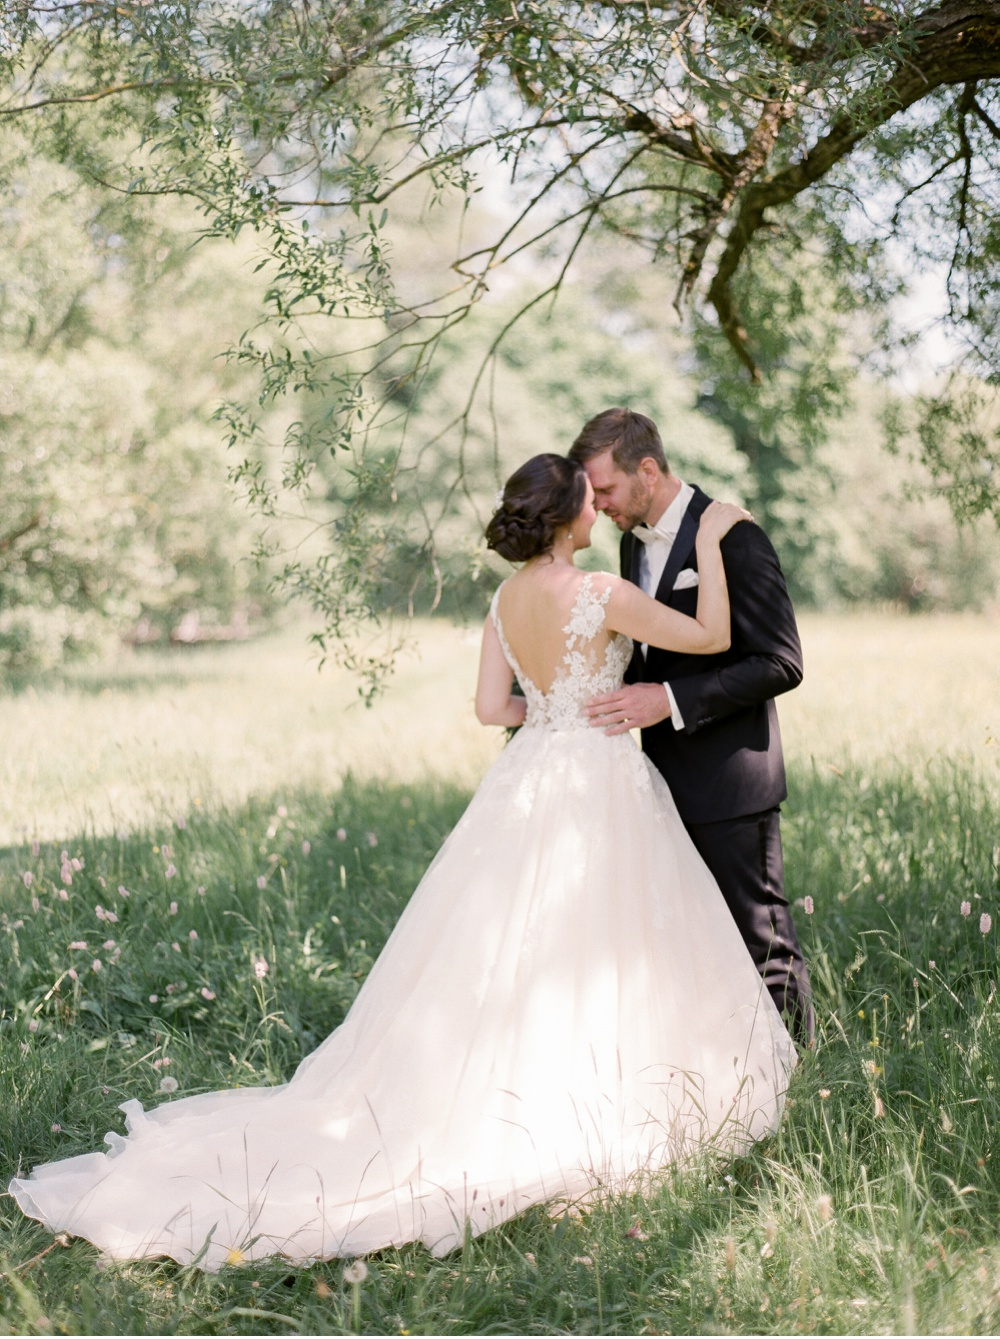 Paris_Provence_Wedding_Photographer©MadalinaSheldon_0018.jpg